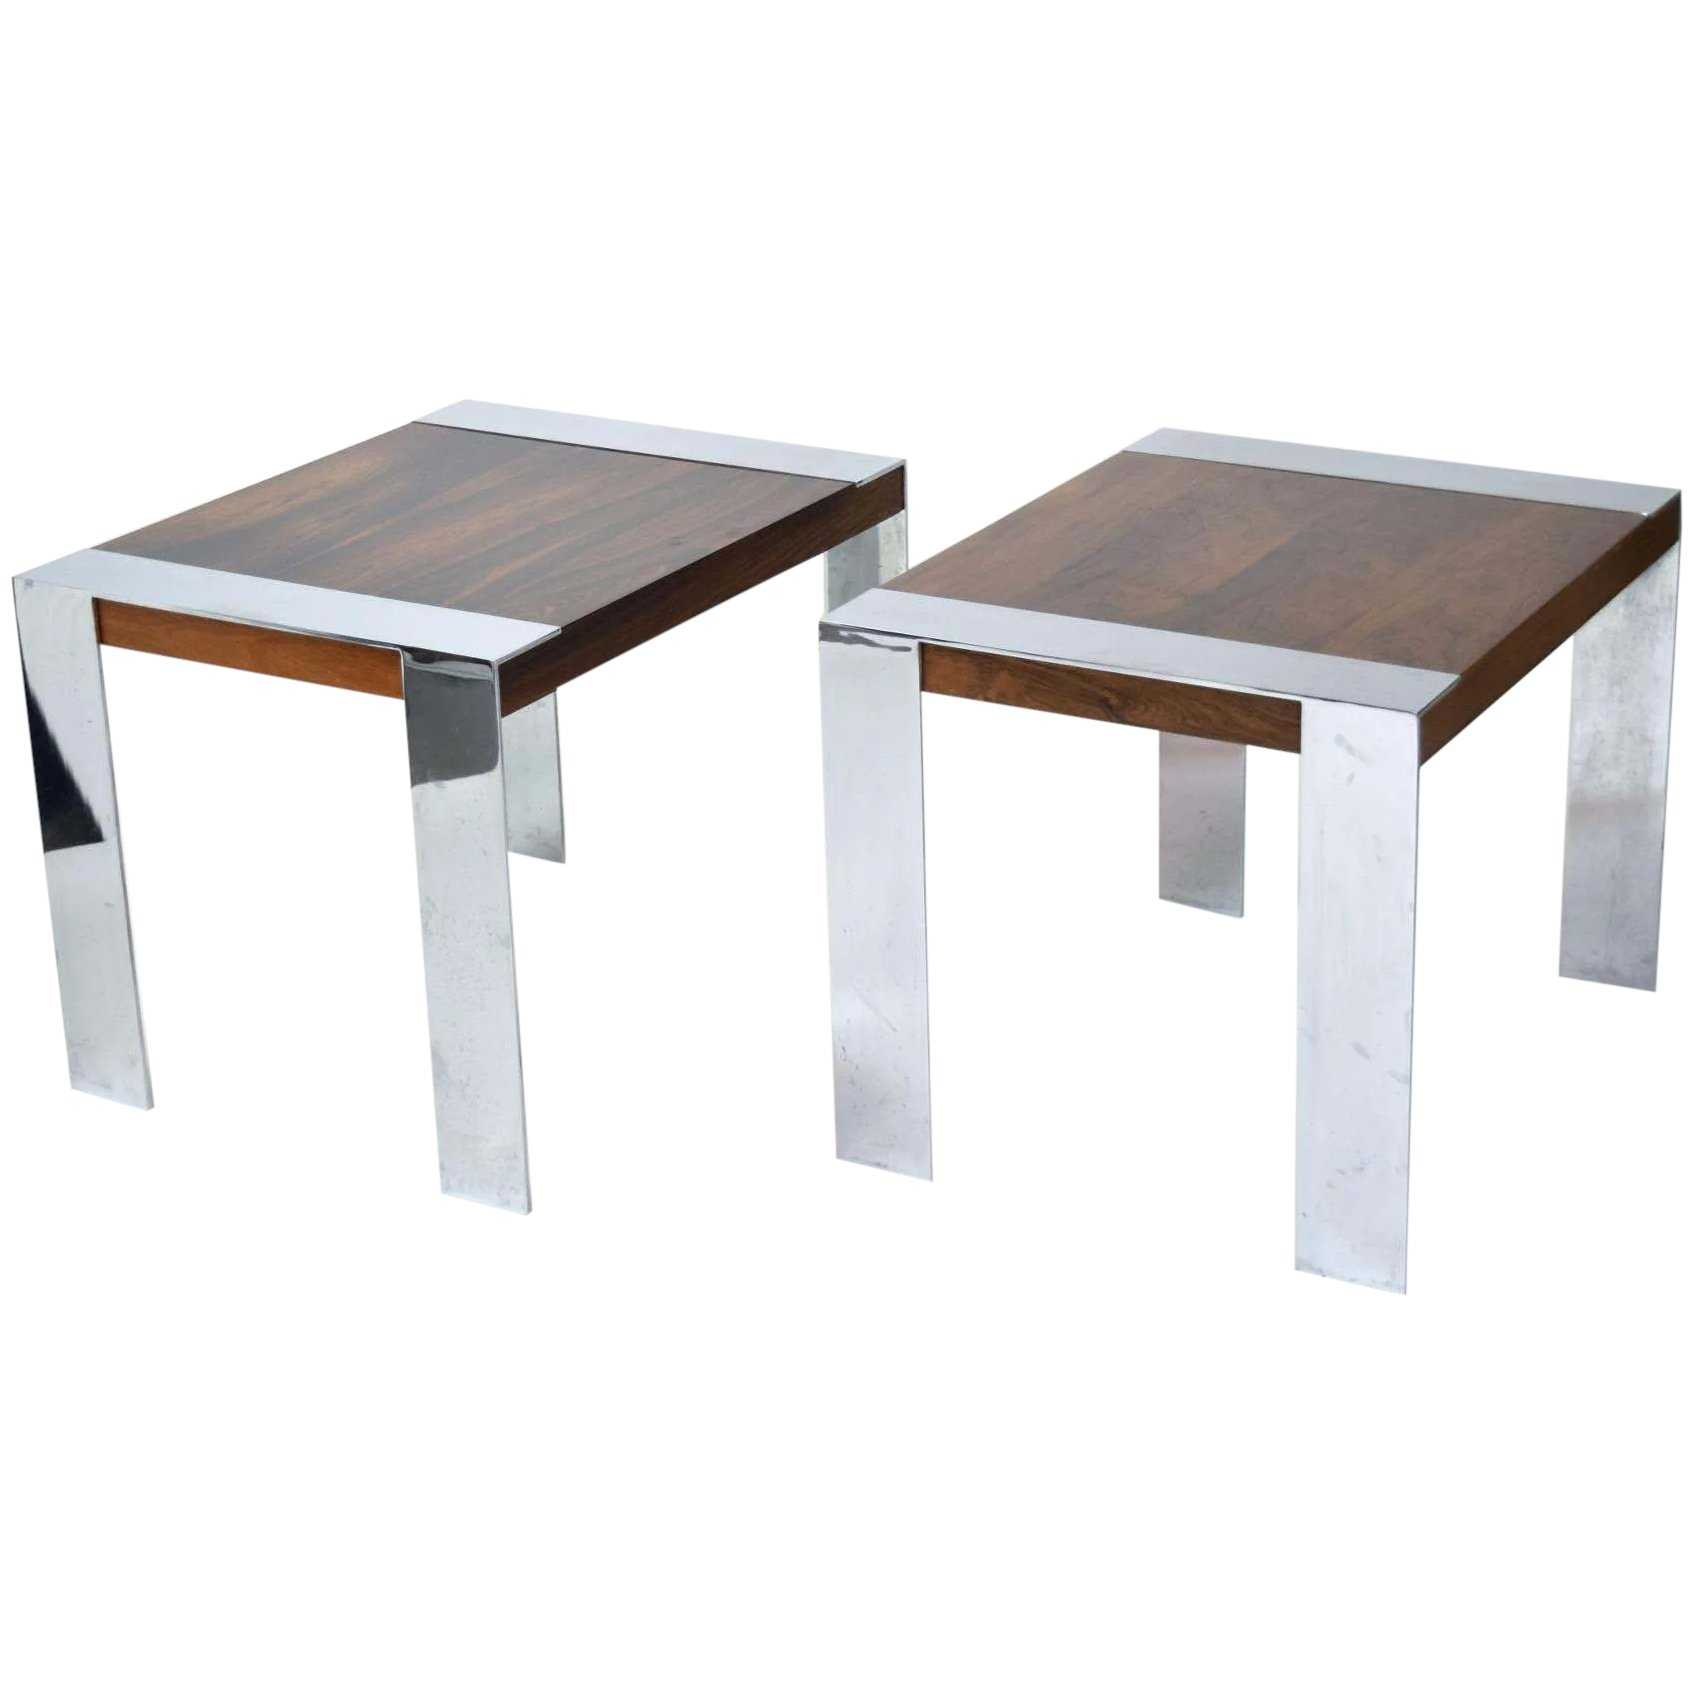 Vintage Pair Milo Baughman Rosewood End Tables Chrome Banding Legs Colin Reed Art Antiques Ruby Lane